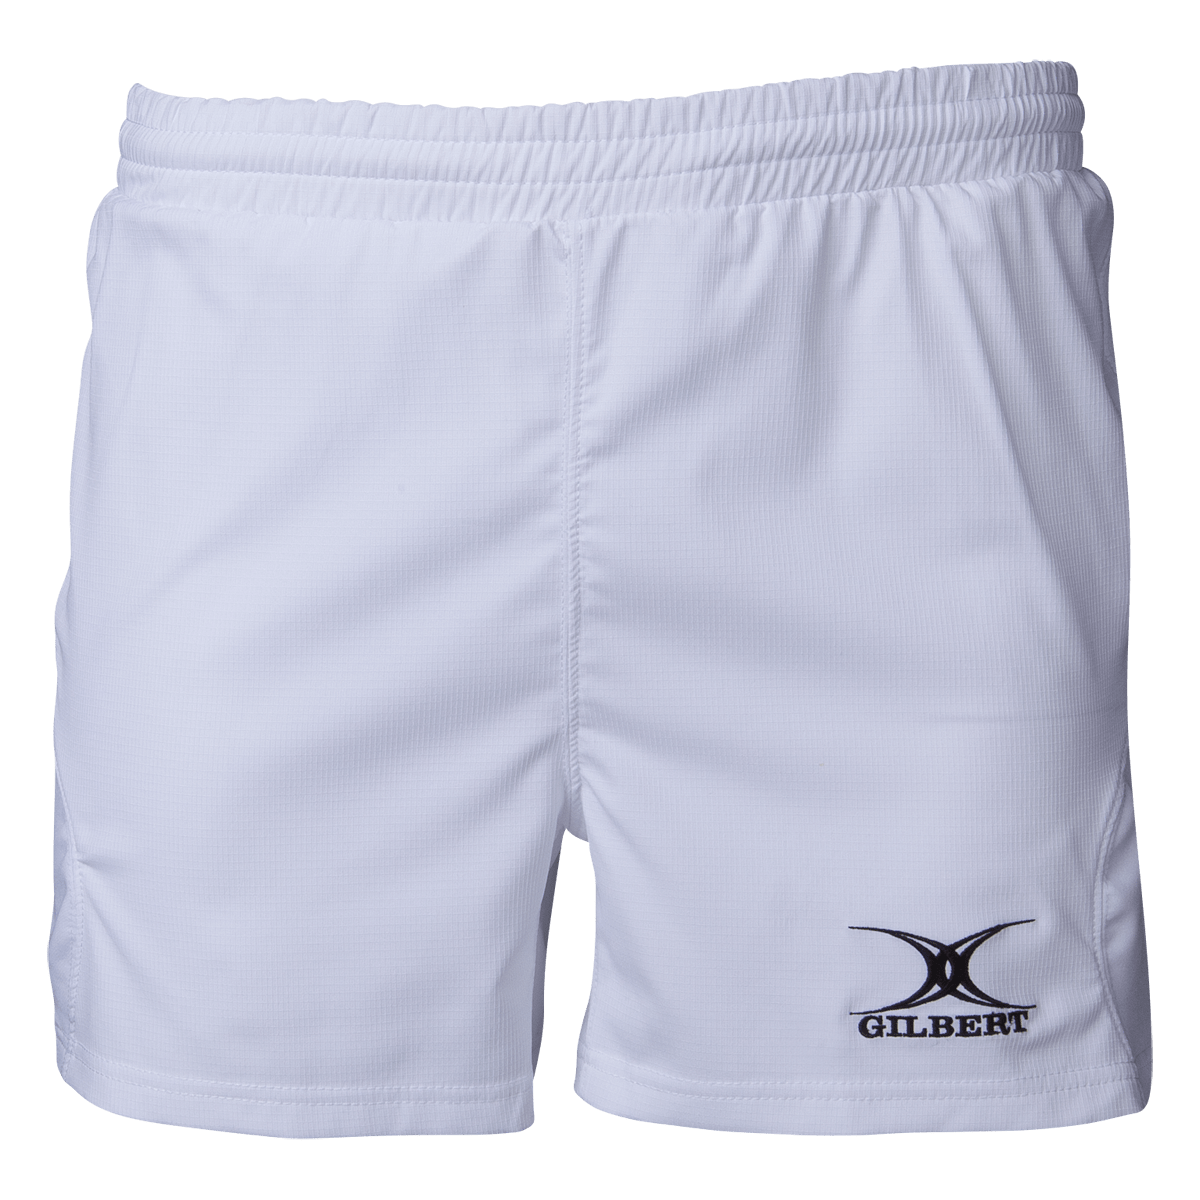 Gilbert White Virtuo Match Shorts